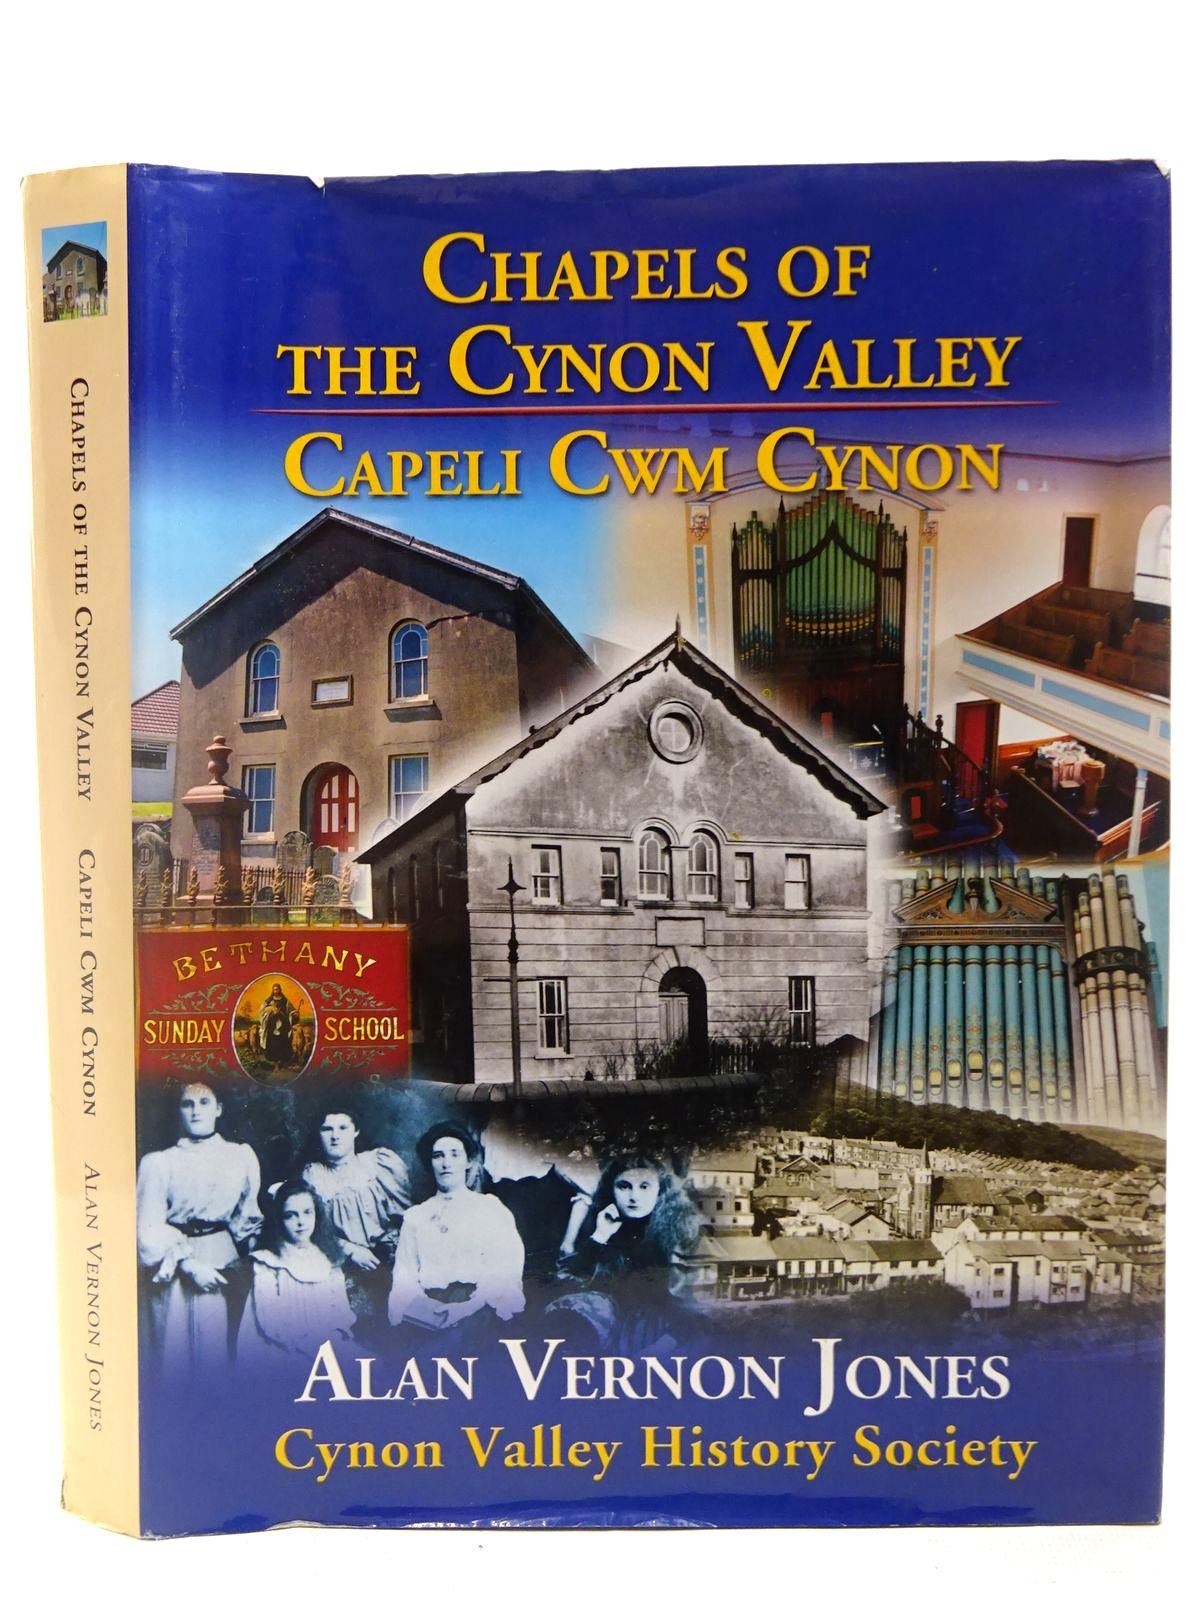 Photo of CHAPELS OF THE CYNON VALLEY CAPELI CWM CYNON written by Jones, Alan Vernon published by Cynon Valley History Society (STOCK CODE: 2127002)  for sale by Stella & Rose's Books